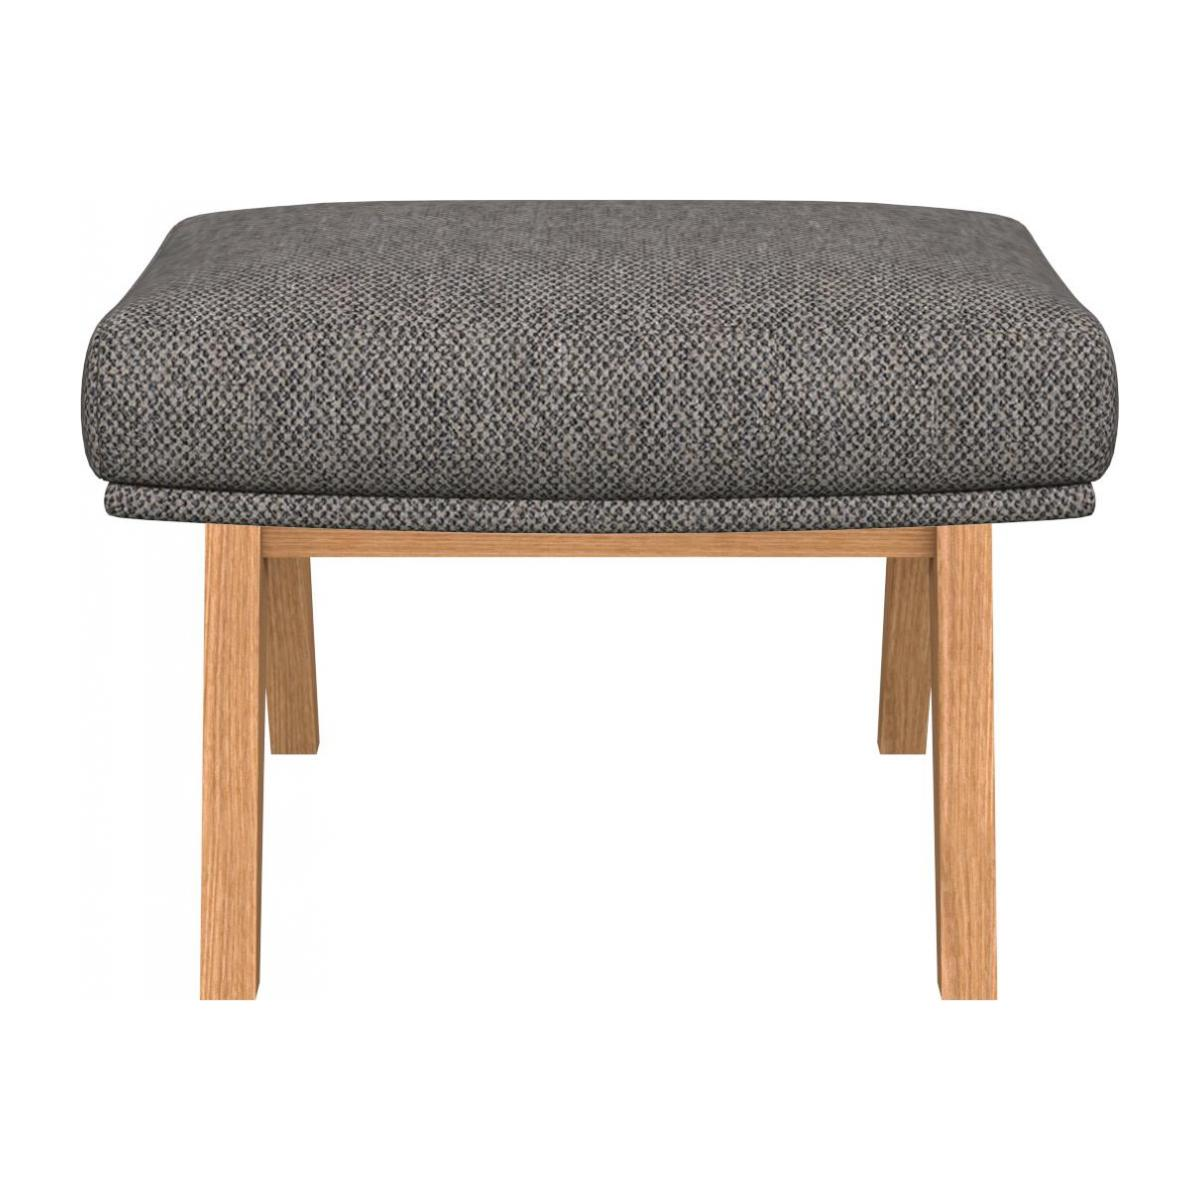 Footstool in Bellagio fabric, night black with oak legs n°2